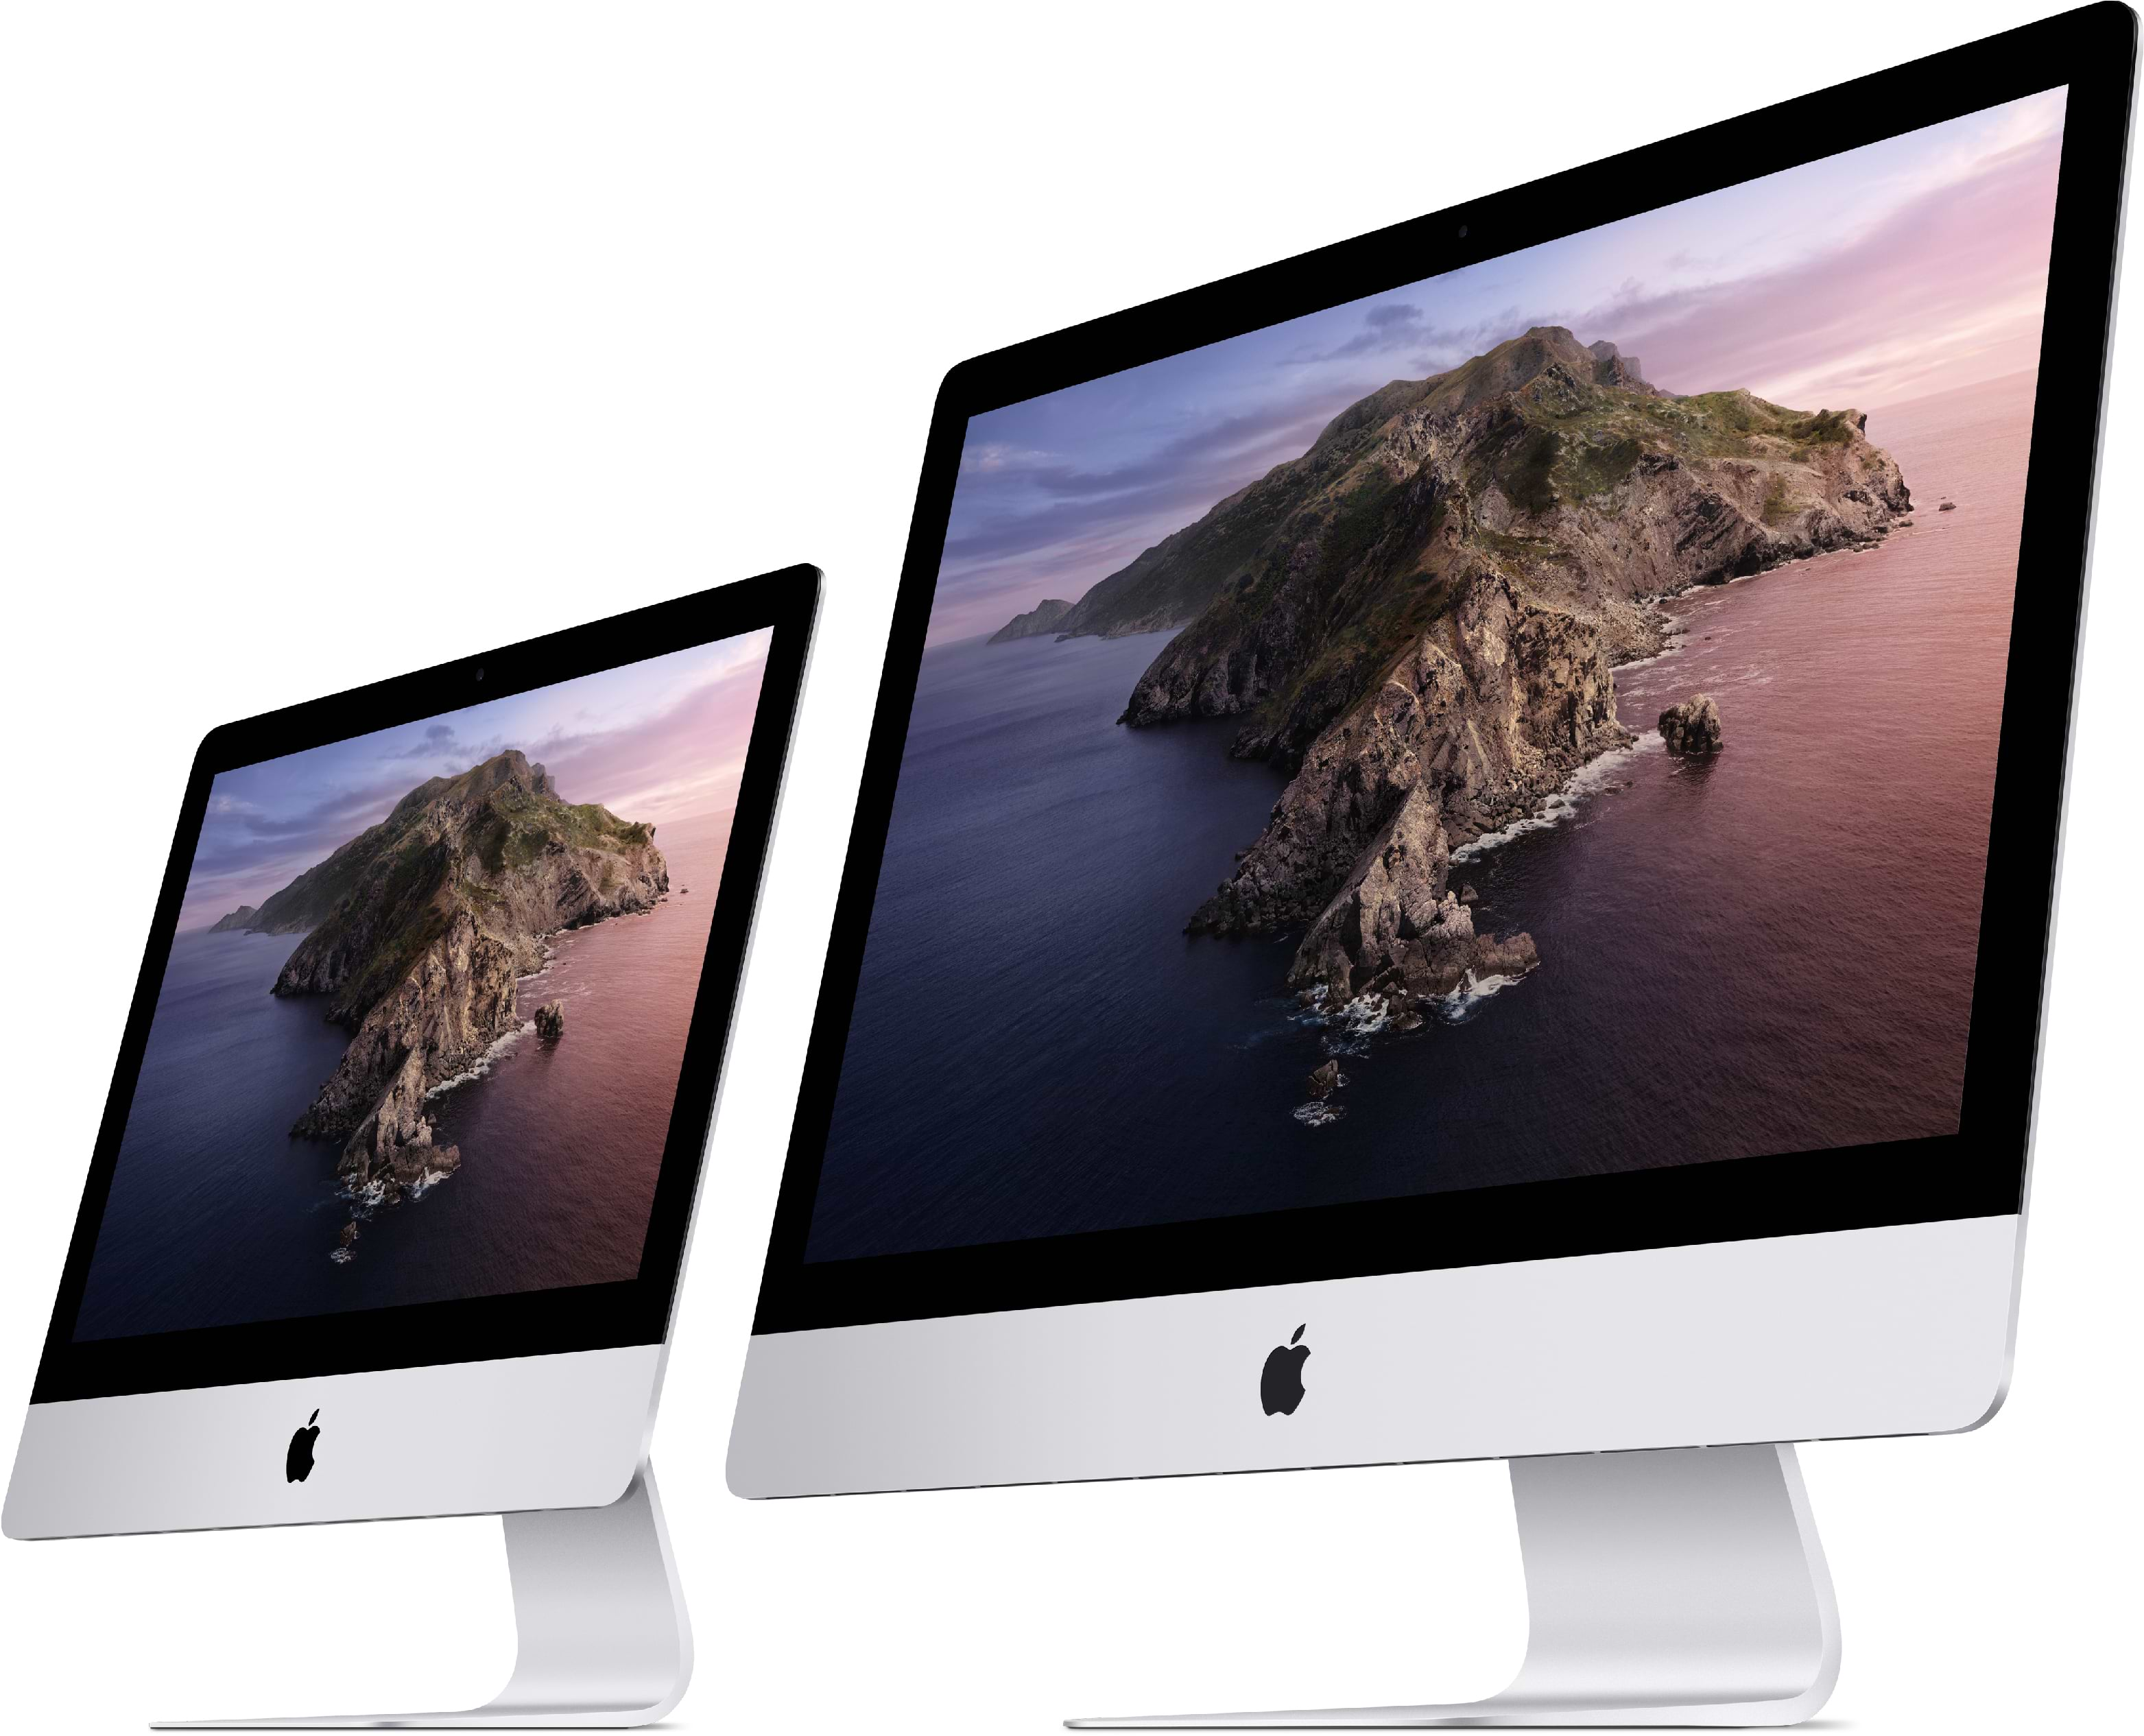 2 iMacs - 21.50-inch and 27-inch side by side